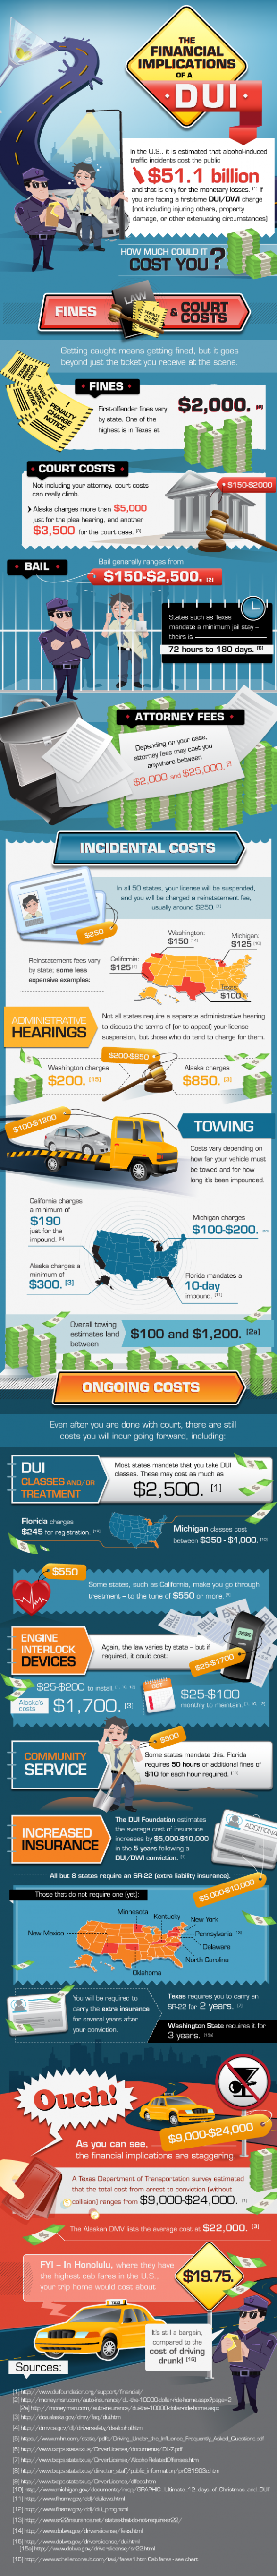 The Financial Implications of a DUI